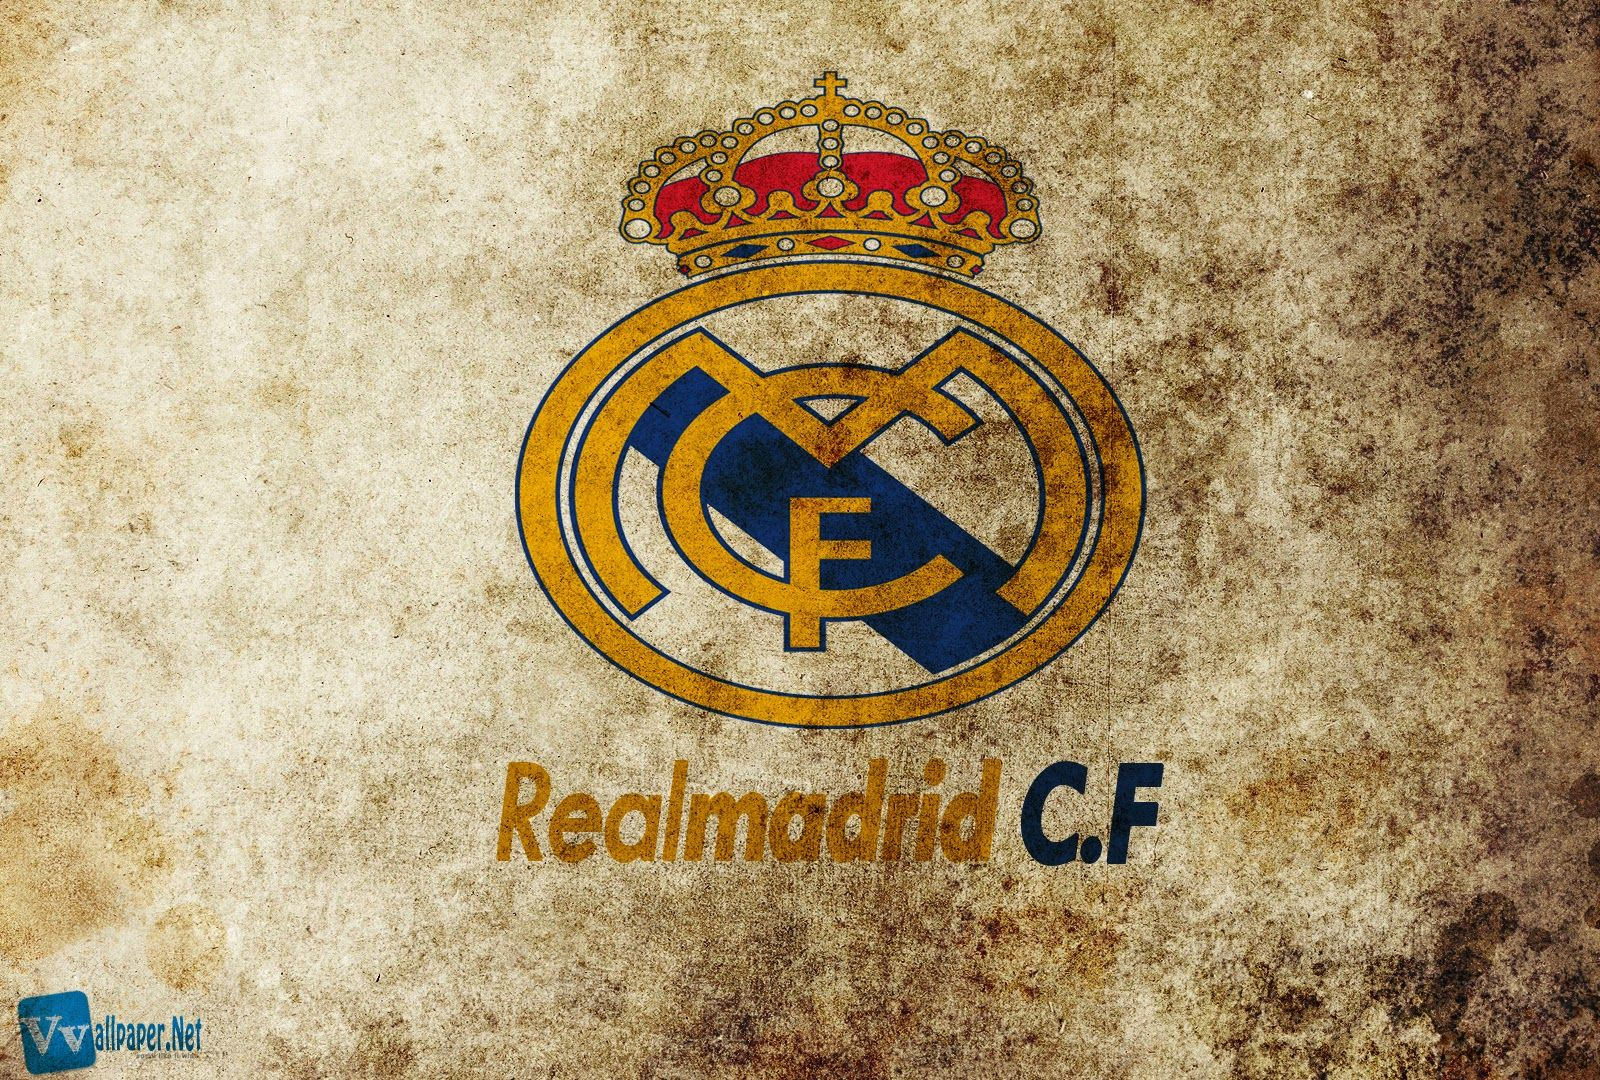 Fotos Del Real Madrid Real madrid wallpapers, Logo